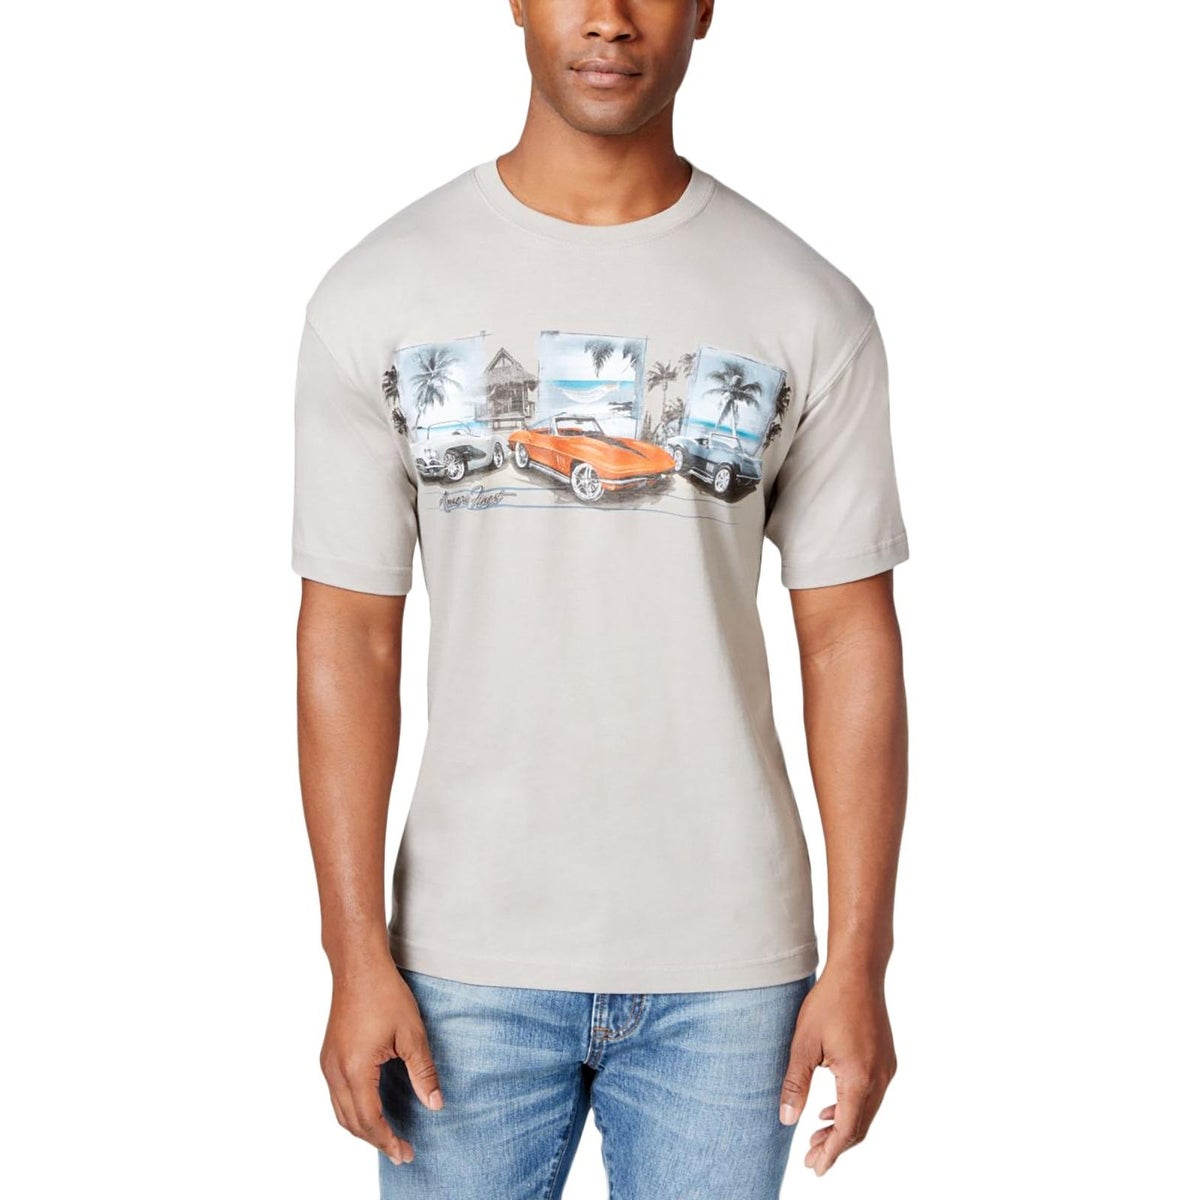 8ea530e39 Shop Newport Blue Mens Big & Tall T-Shirt Graphic Crew Neck - lt - Free  Shipping On Orders Over $45 - Overstock - 20717687